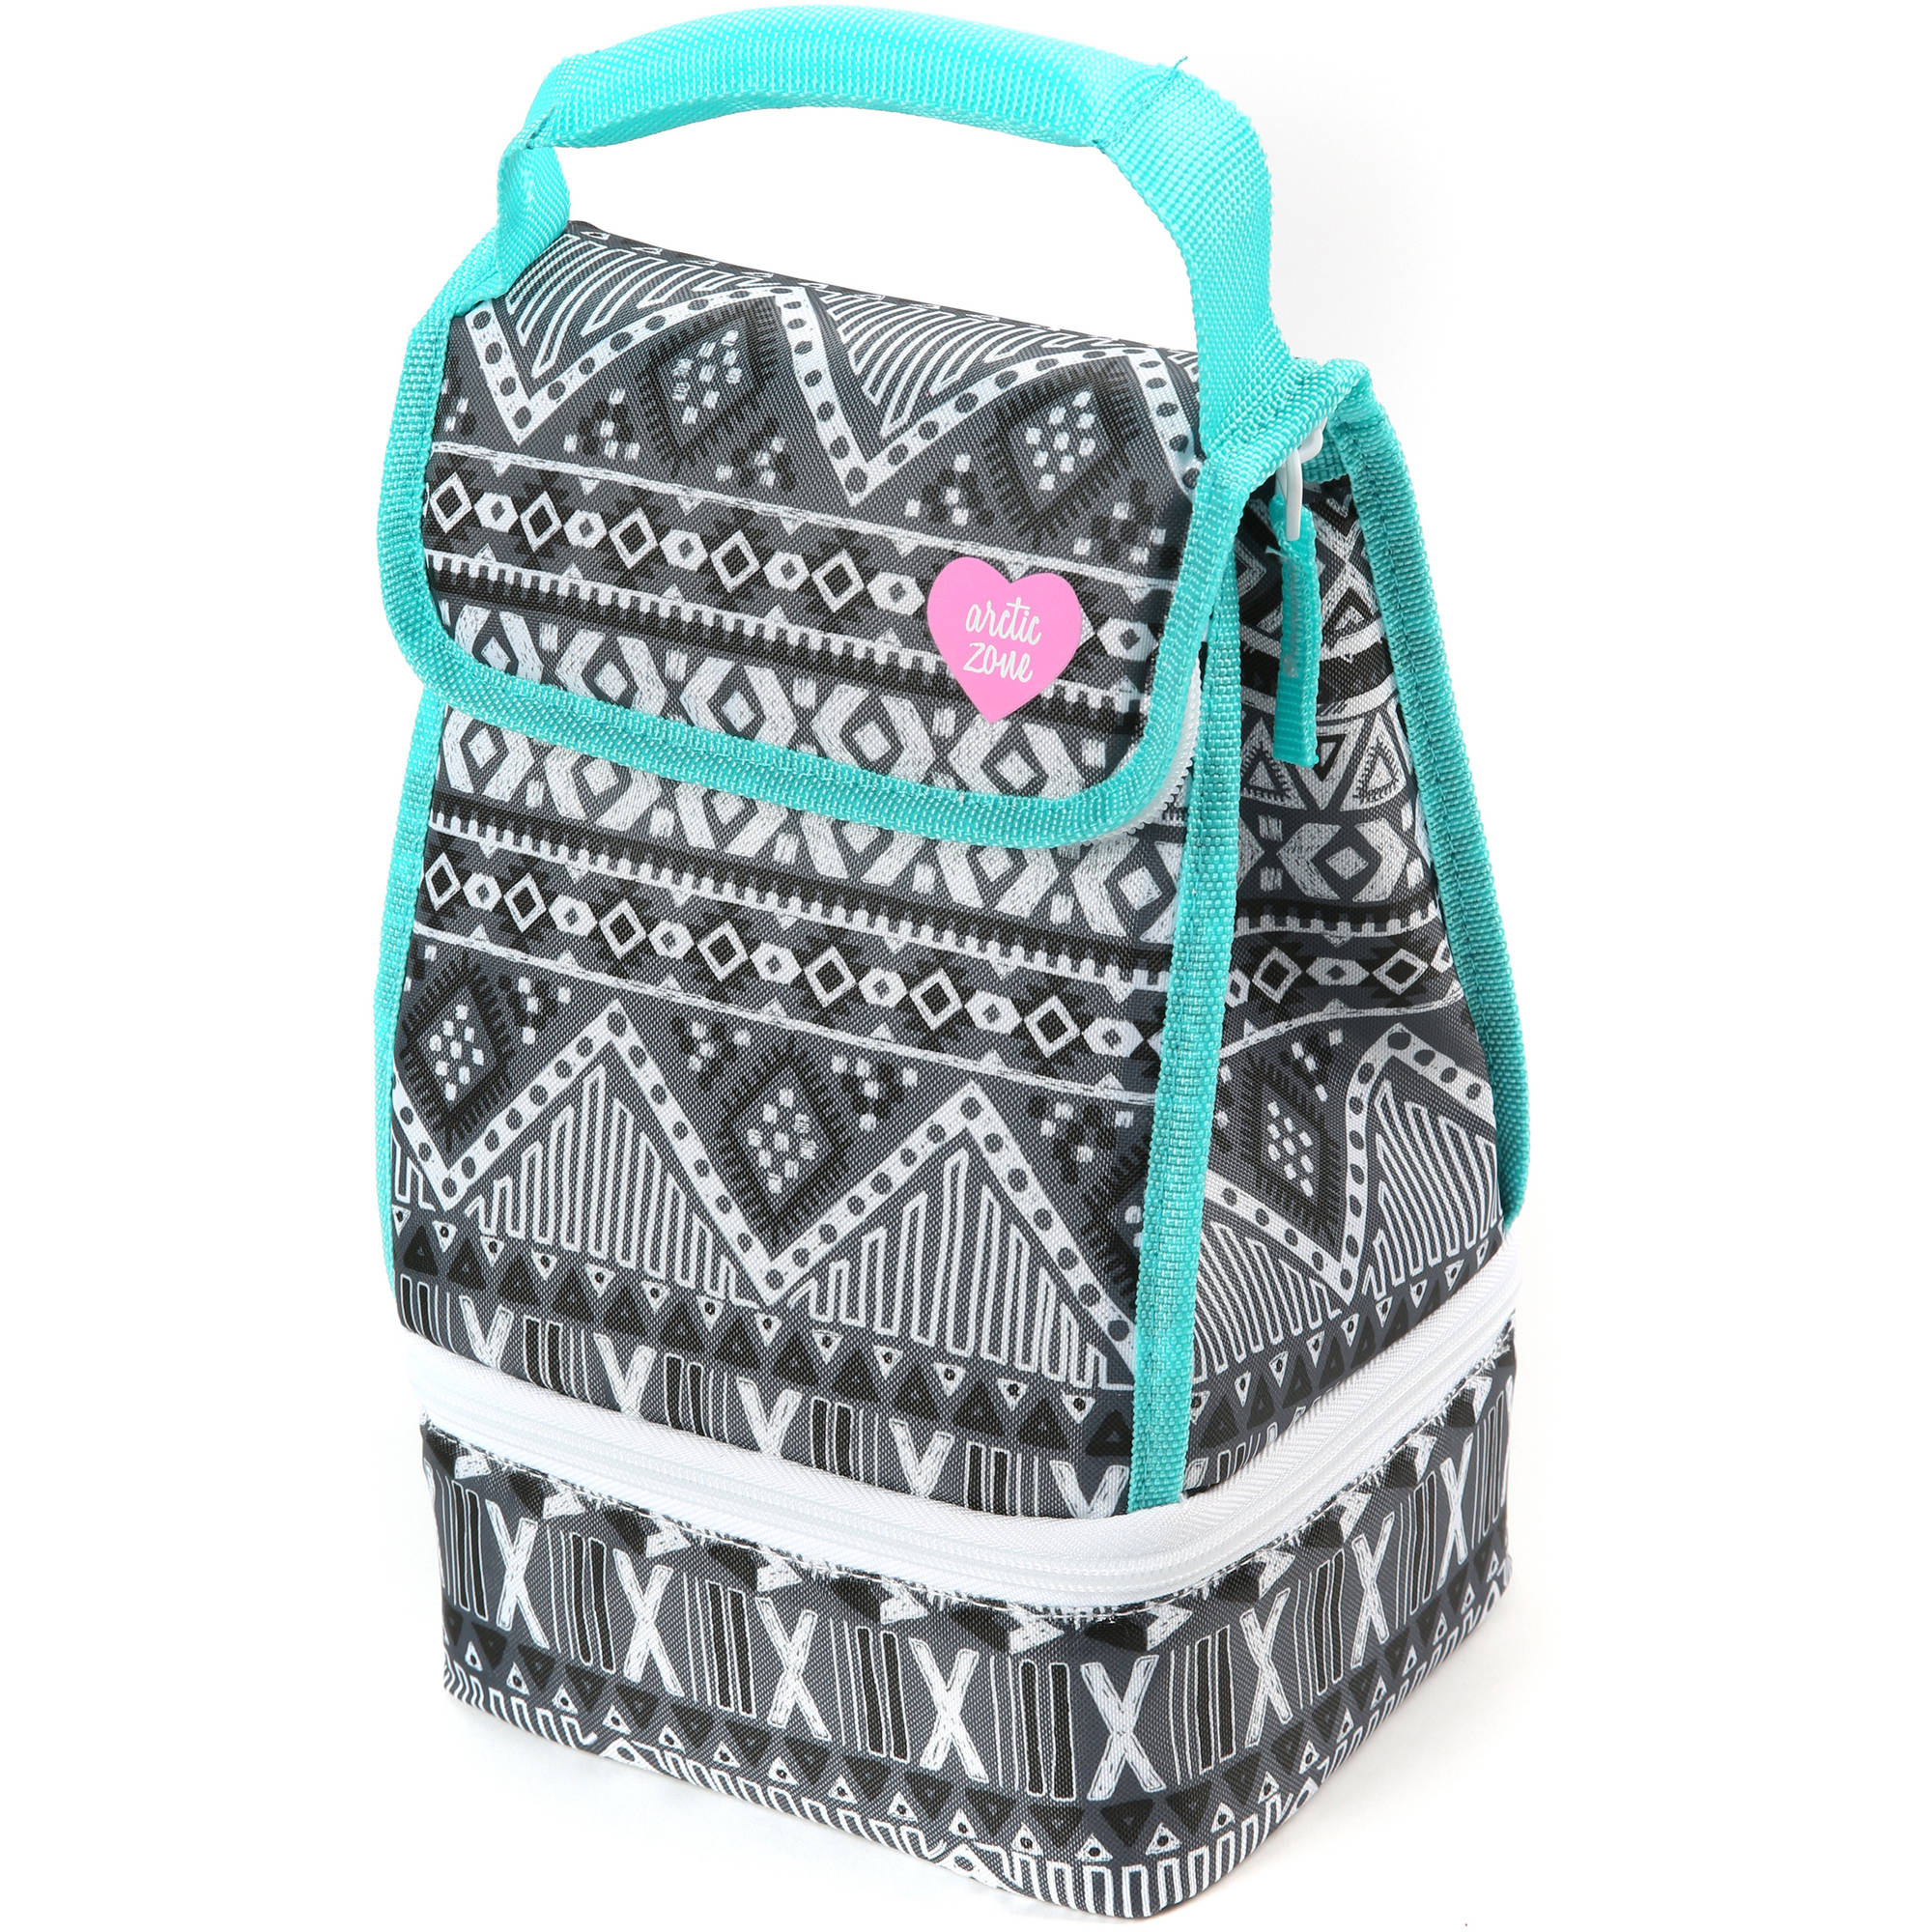 Artic Zone Lunch Bag Plus, Black and White Aztec